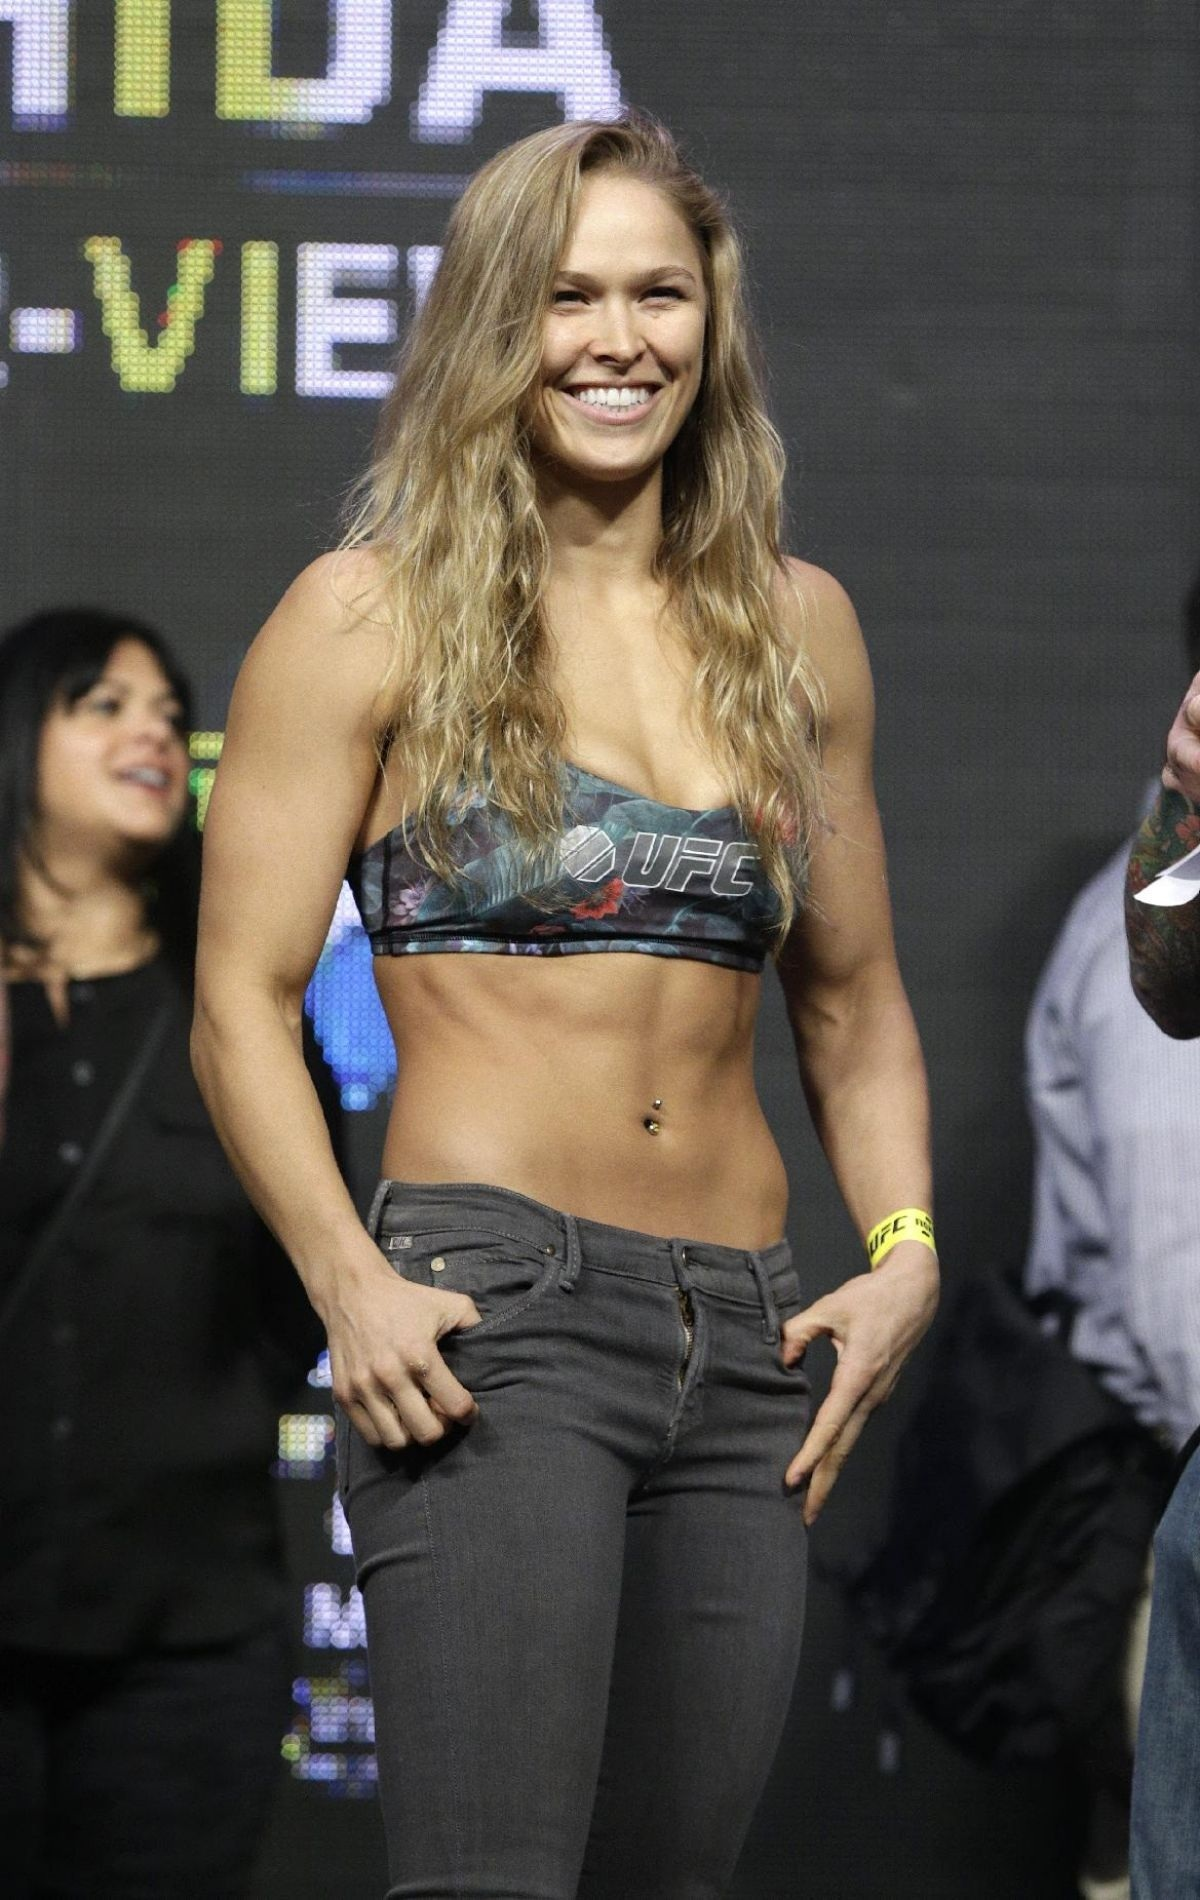 Ronda Rousey At Ufc Weigh In